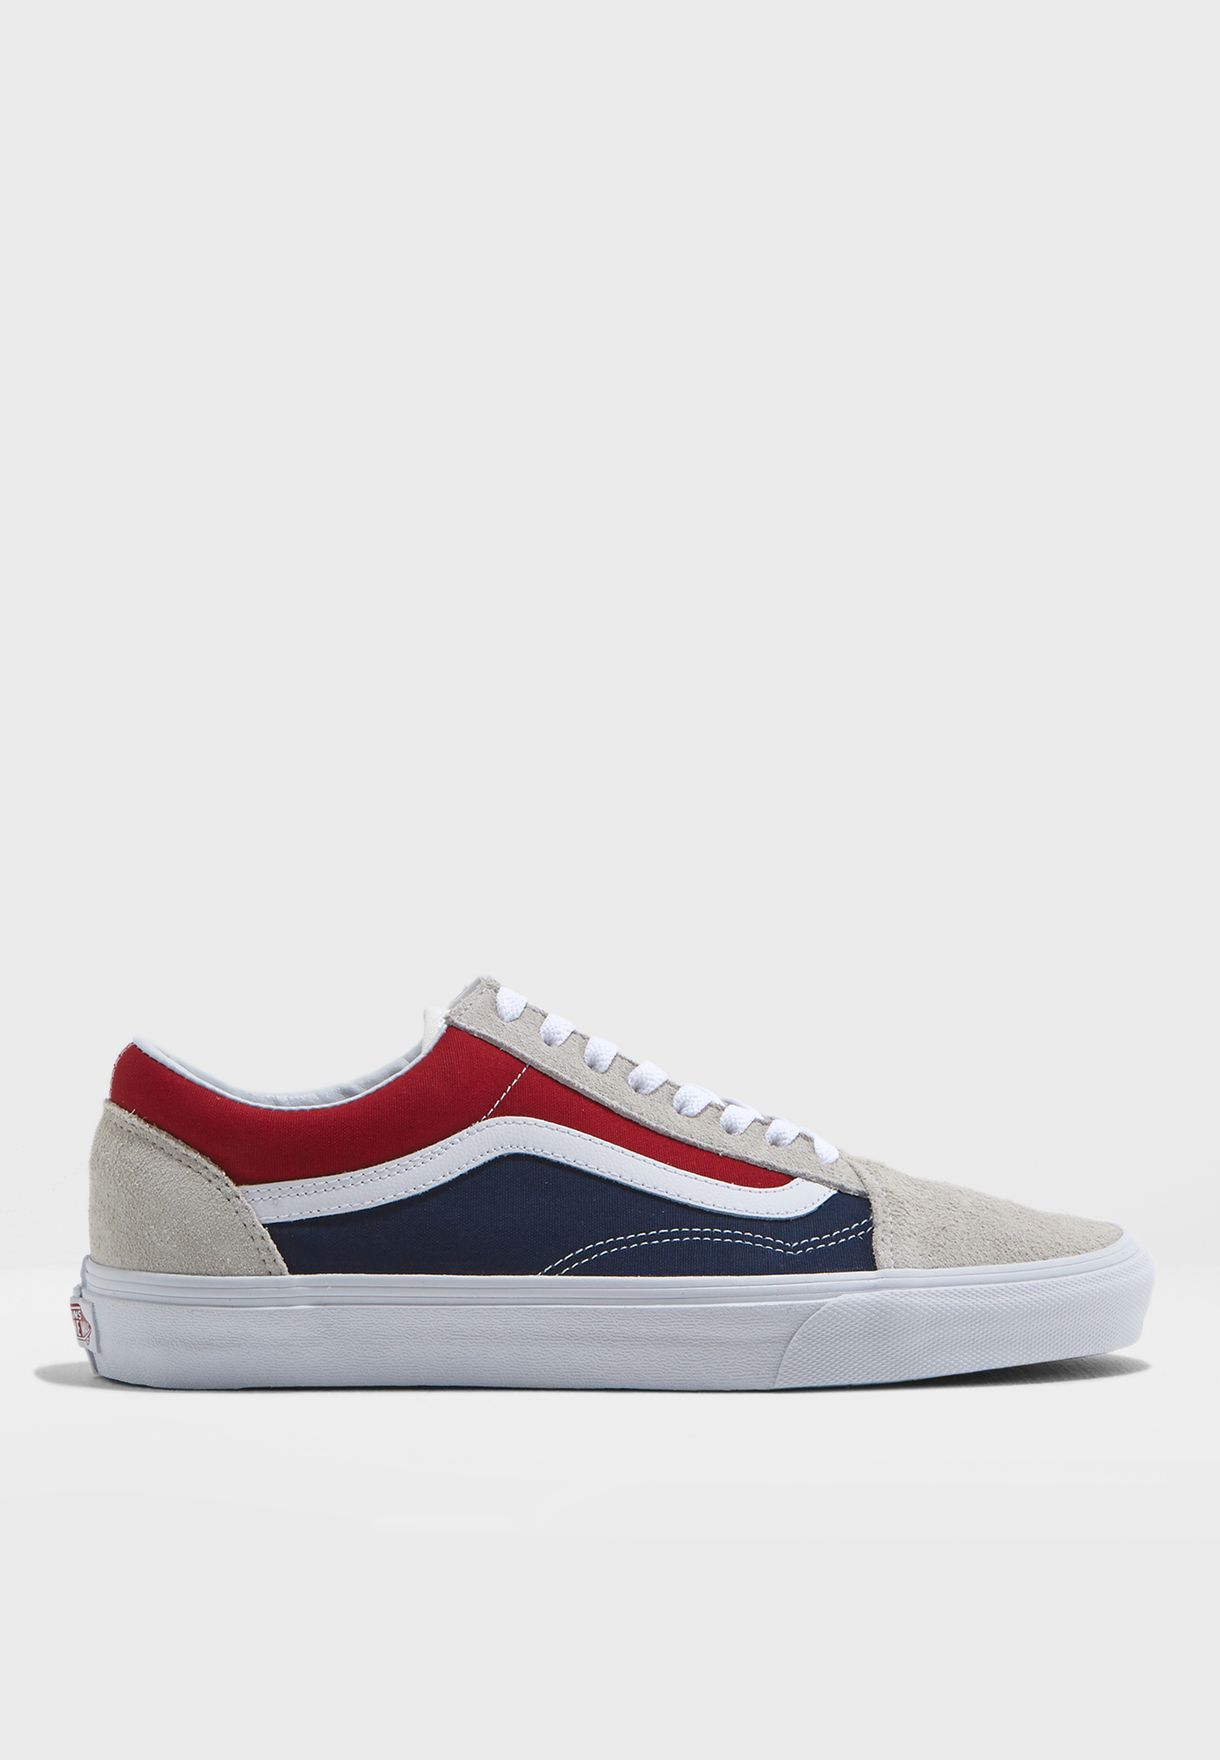 d95d5621c235 Shop Vans multicolor Retro Block Old Skool Sneakers 8G1QKN for Men ...